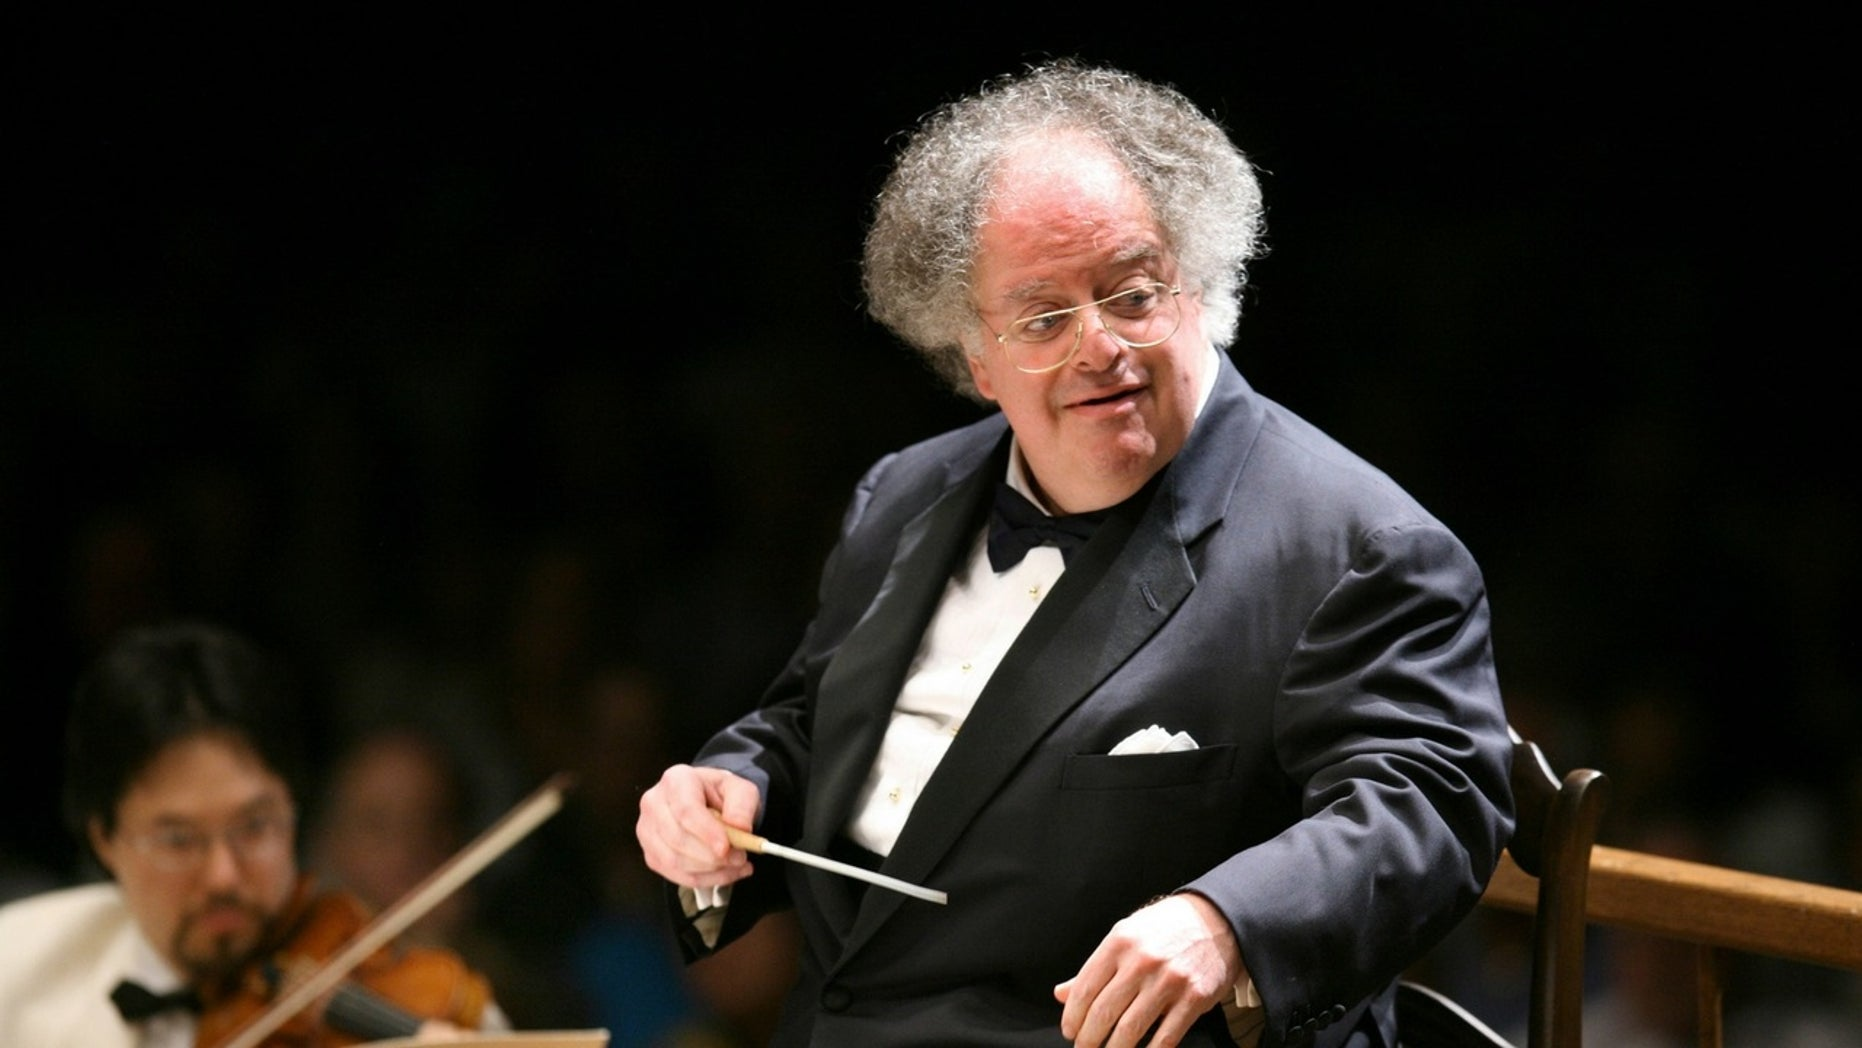 James Levine filed a lawsuit against the Metropolitan Opera over a sexual misconduct investigation that sank his storied career.